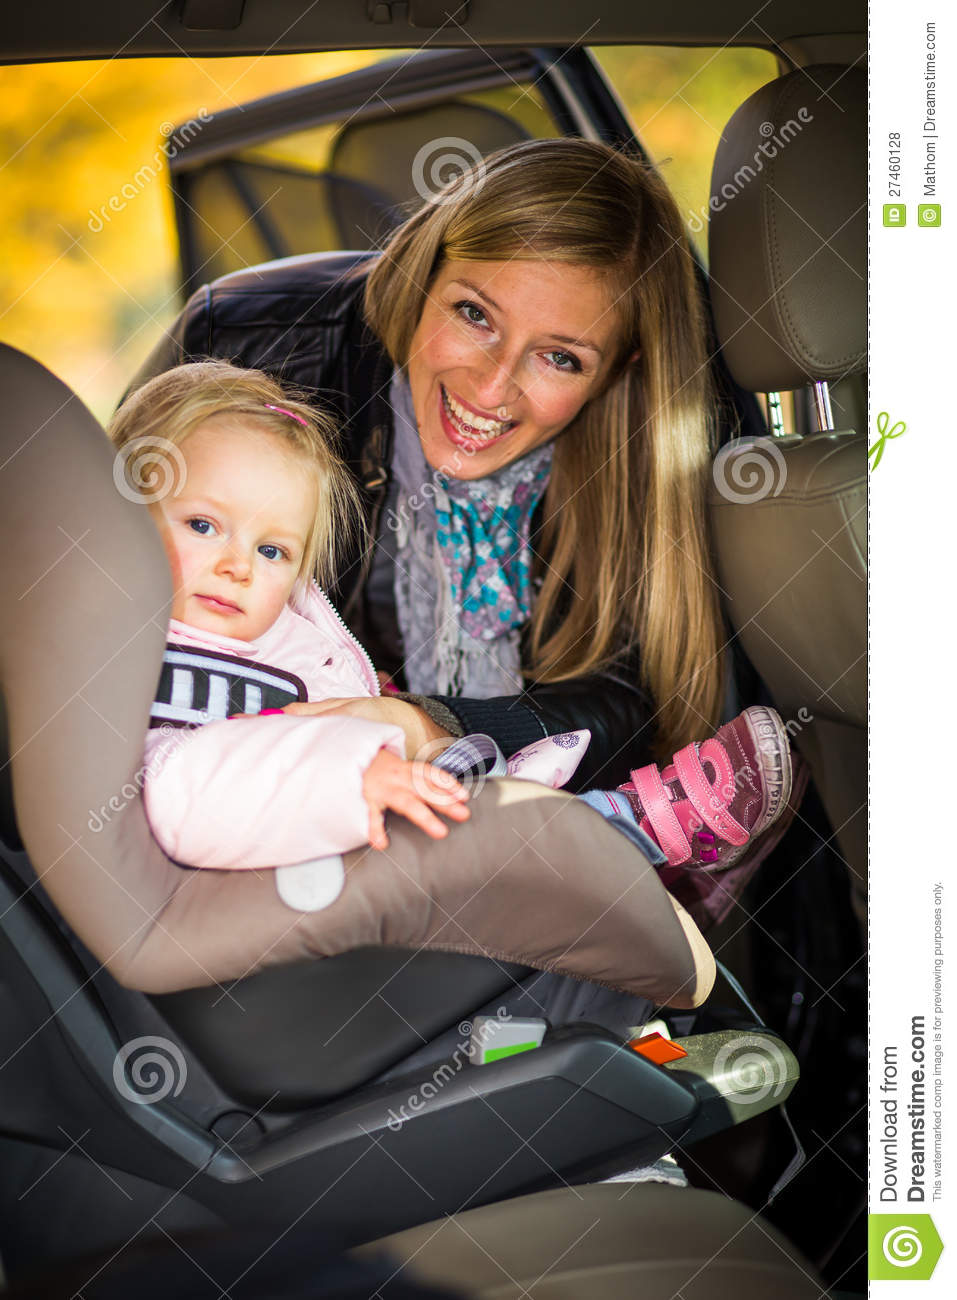 Baby Fastened In Car Seat Royalty Free Stock Photos